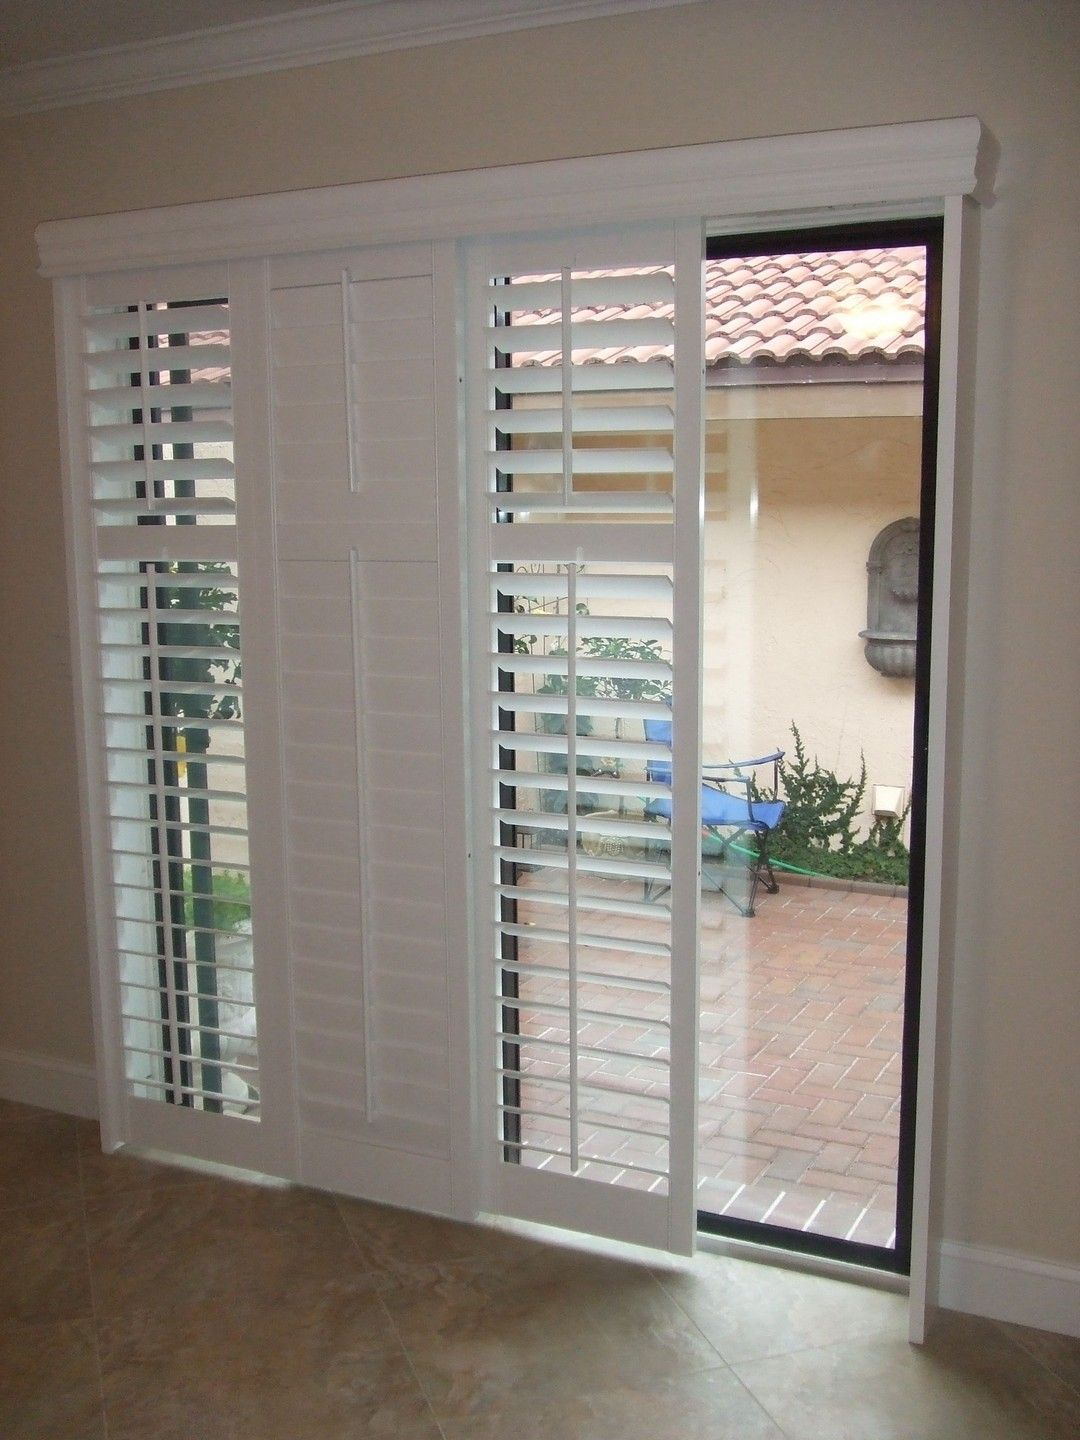 Best Window Treatments For French Doors in 2020 (With images)